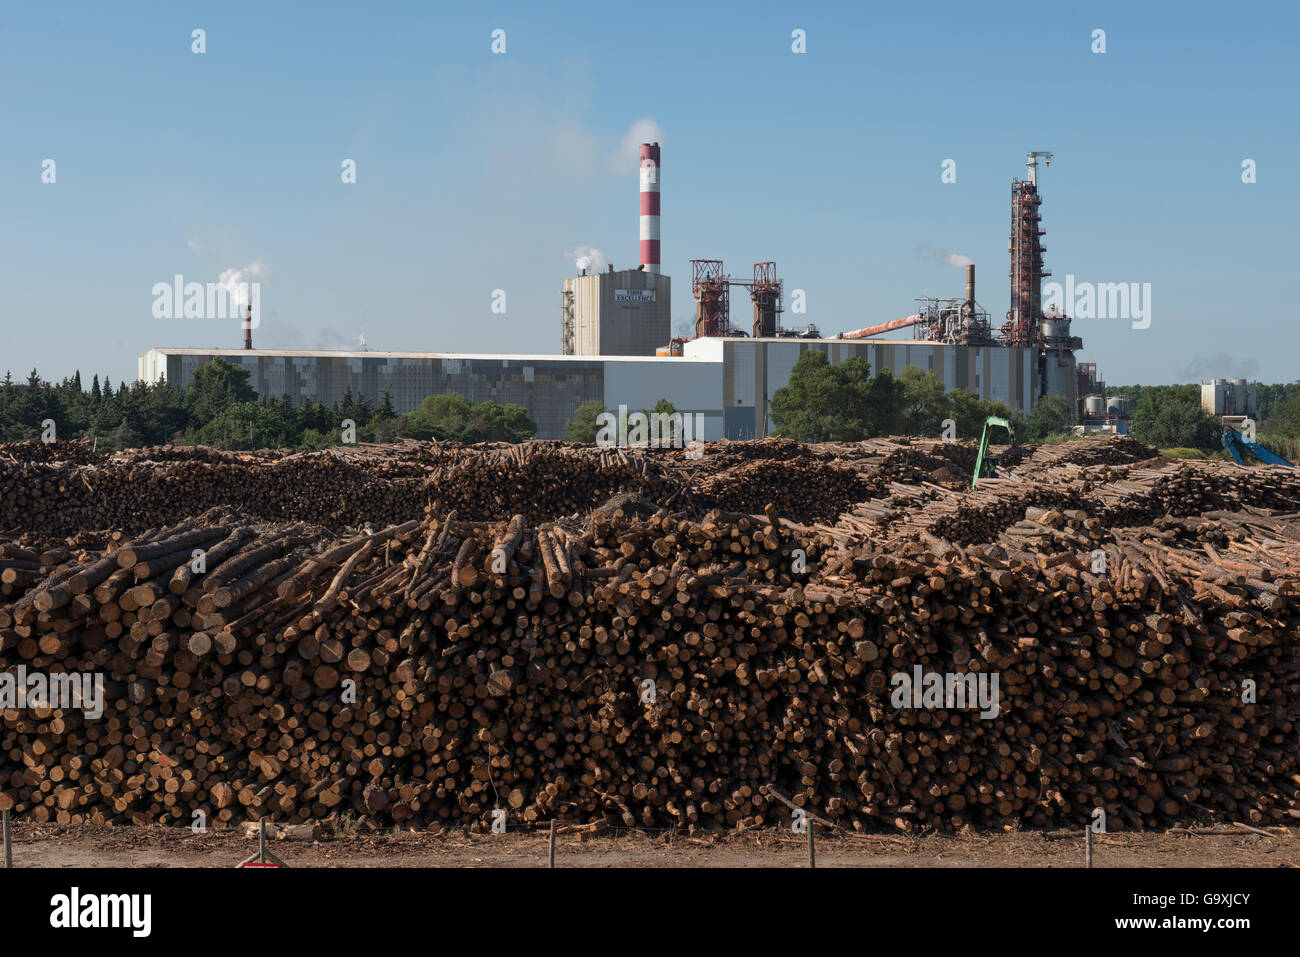 Fibre Excellence mill producing paper pulp, Tarascon, Provence, France, June. - Stock Image